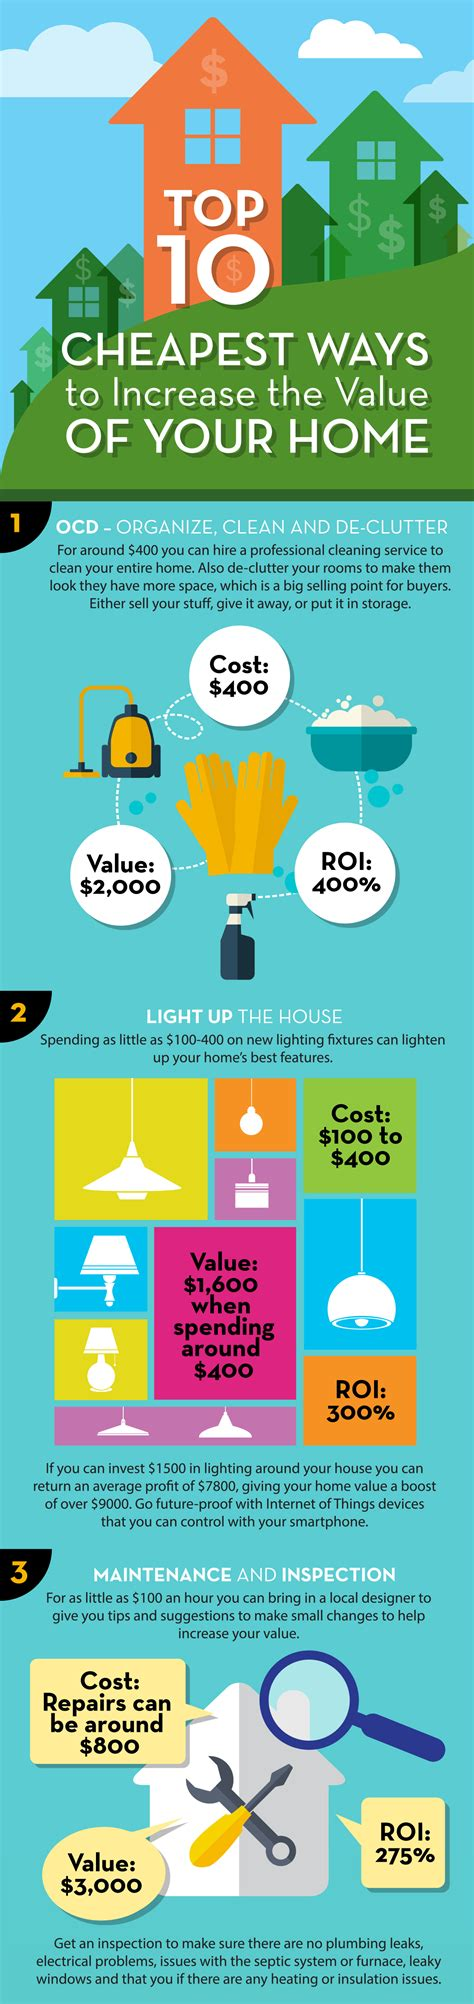 ways to increase home value top 10 cheapest ways to increase the value of your house